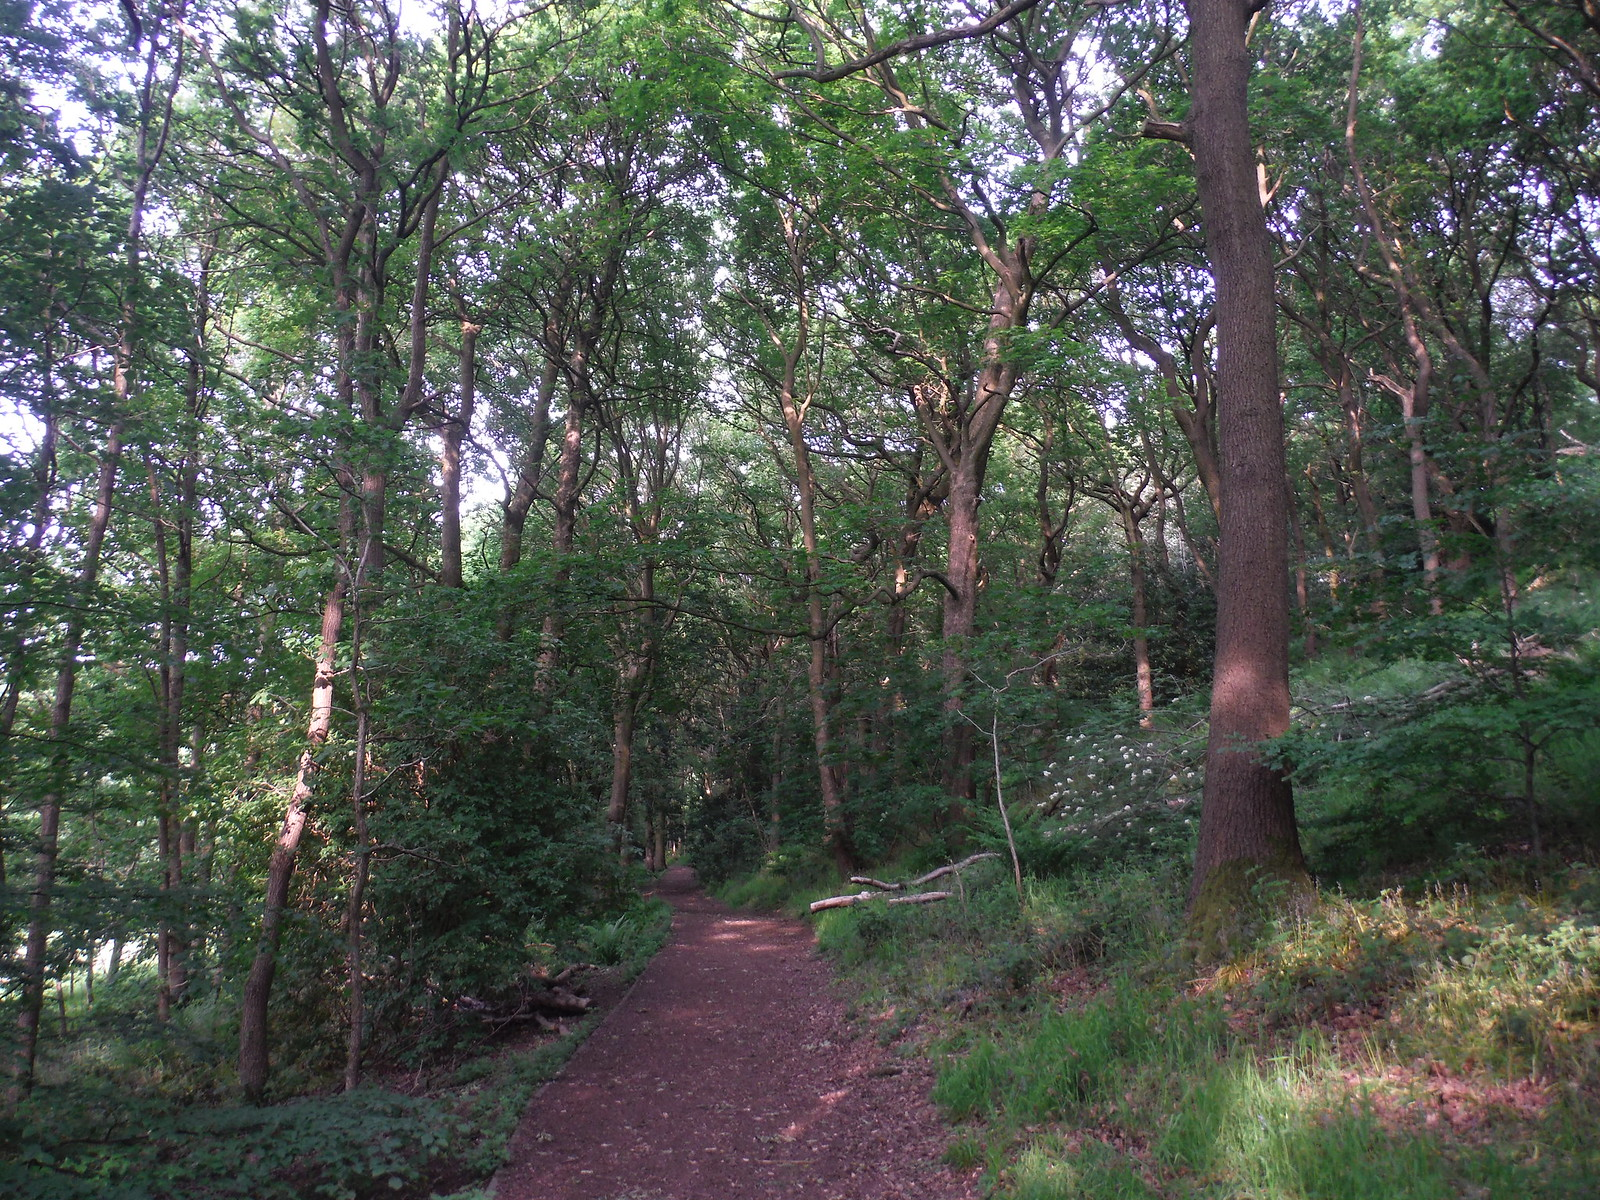 Parkbank Wood SWC Walk 267 - Sheffield Circular (via Porter, Limb, Sheaf and Gleadless Valleys)